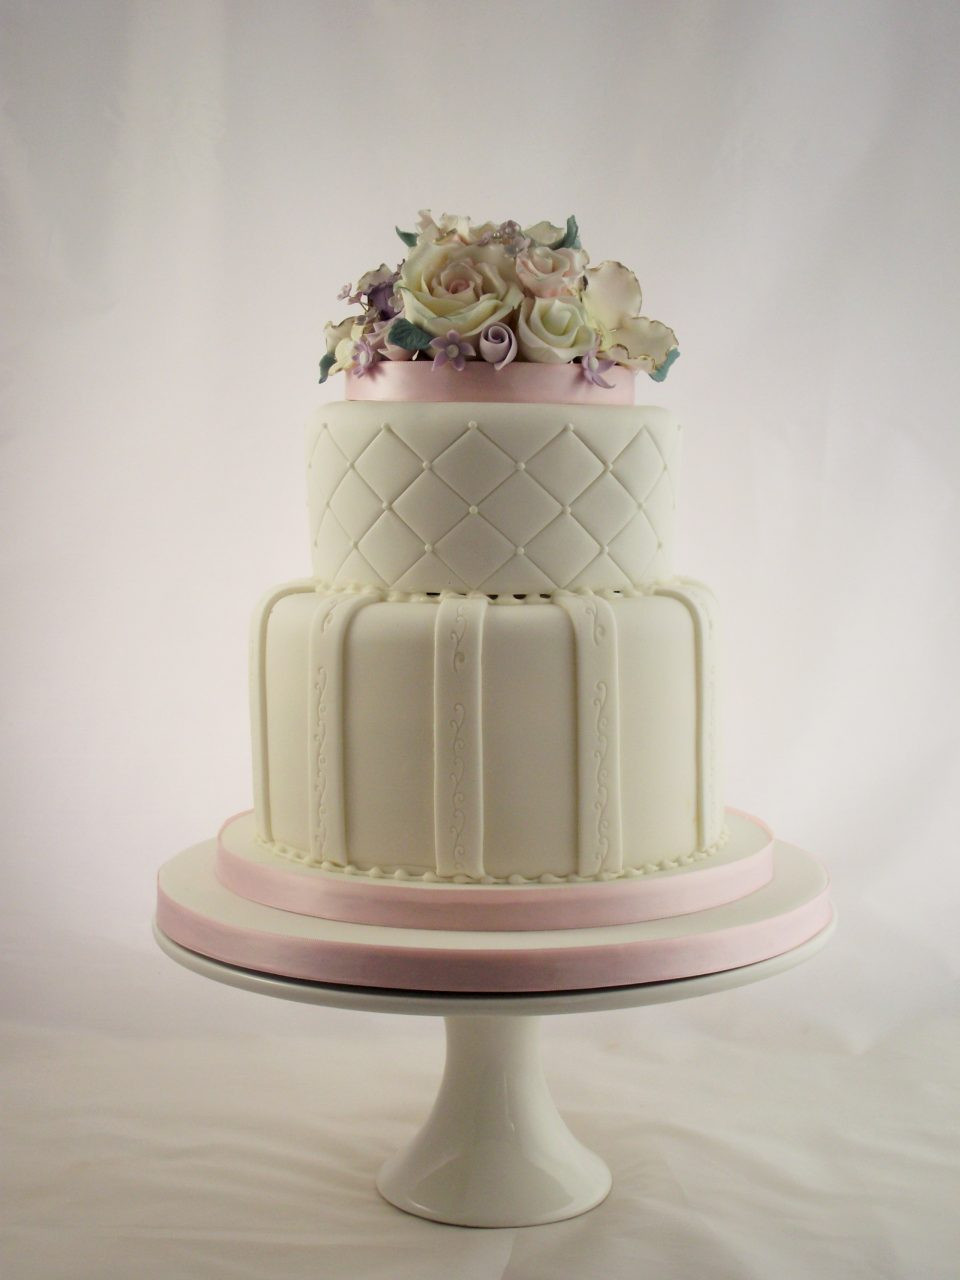 2016 Wedding Cakes  24 Fab Wedding Cakes for 2016 Couples